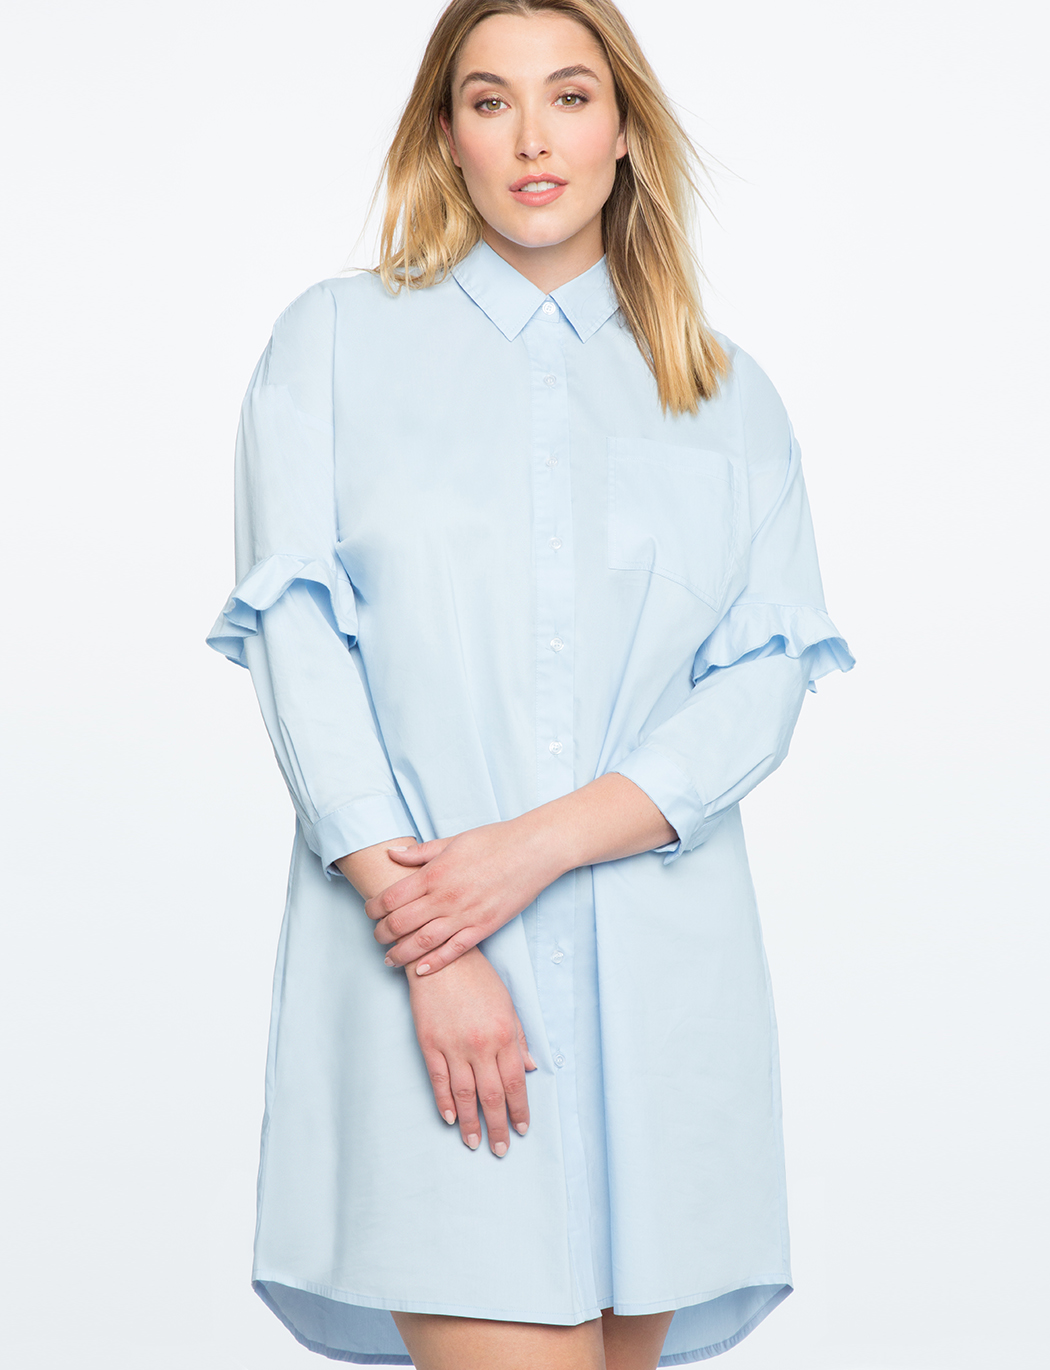 Oversized Button Down Dress | Women\'s Plus Size Dresses | ELOQUII